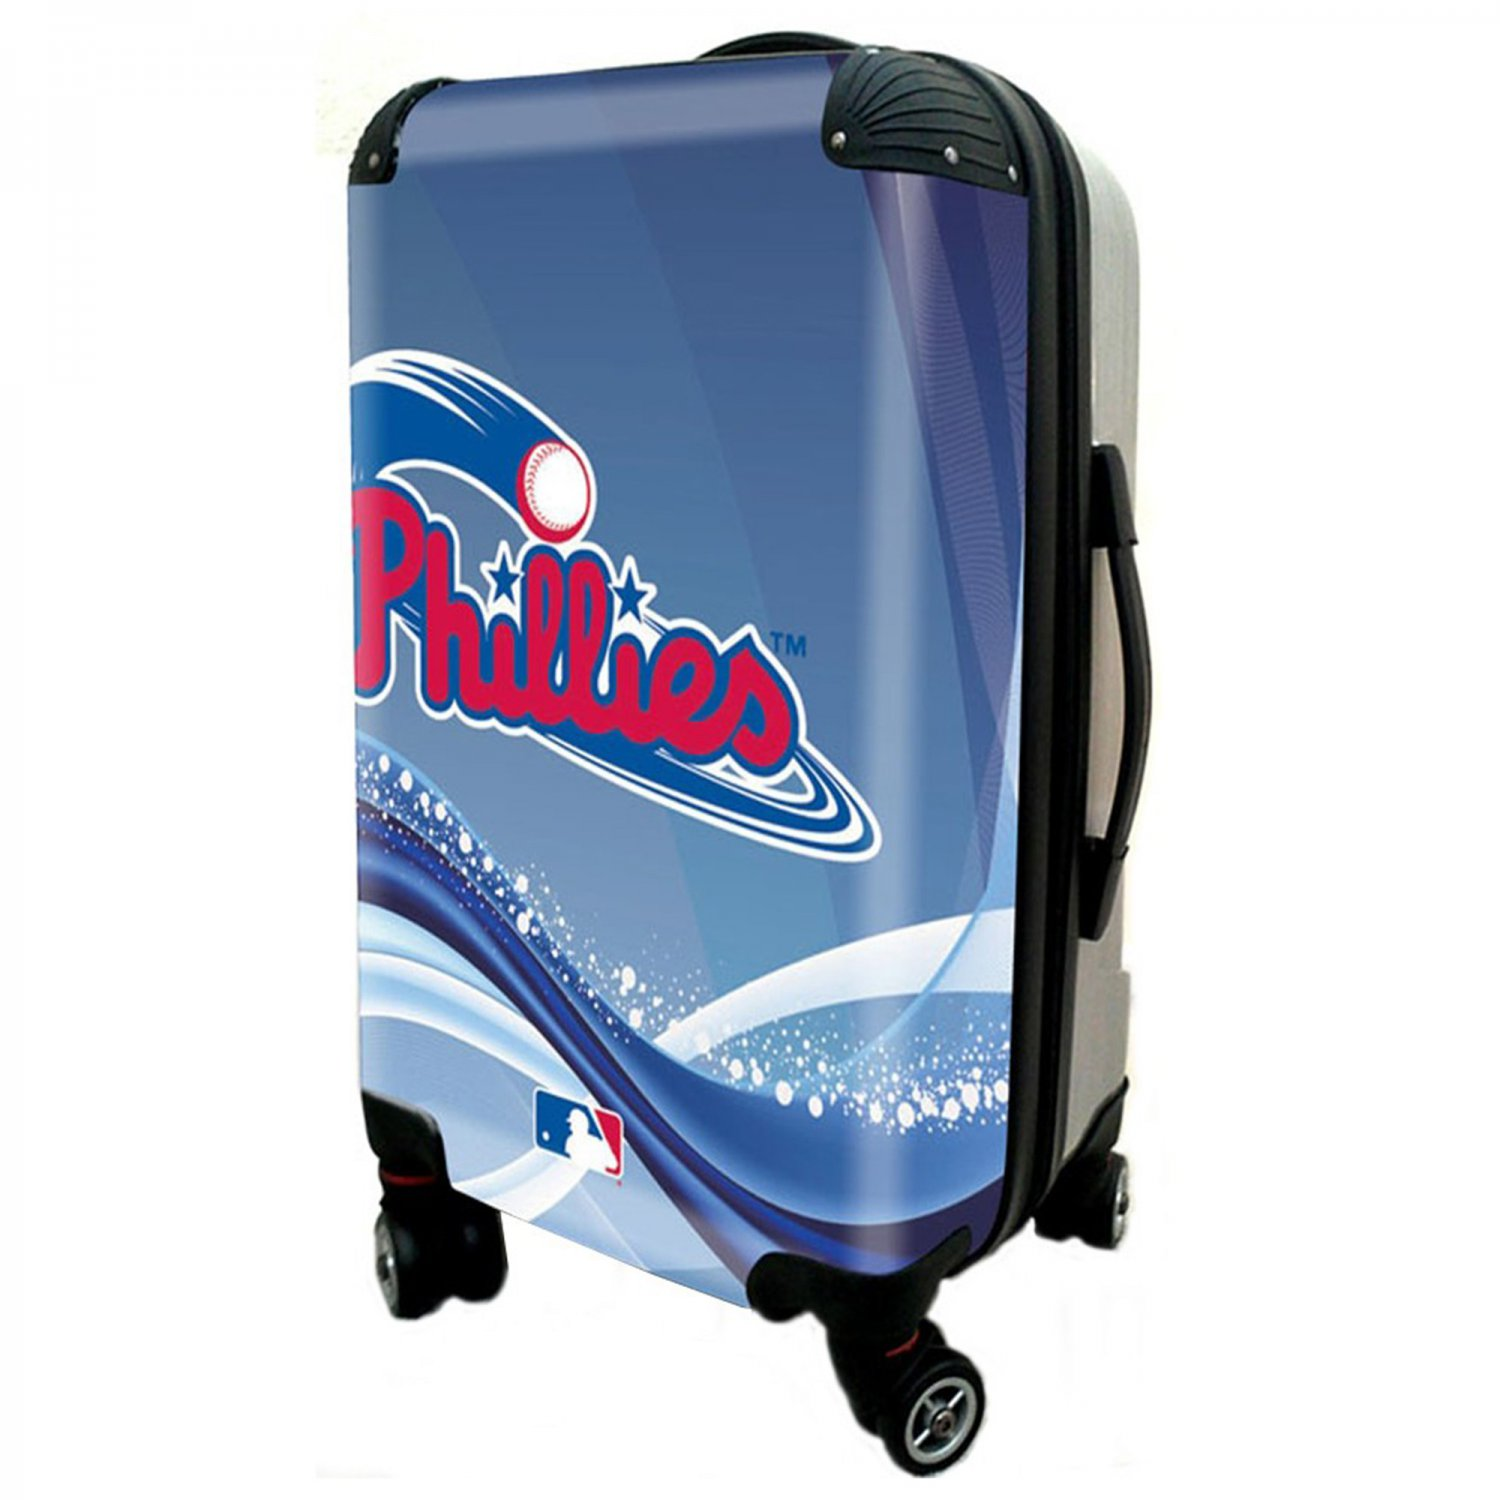 "Philadelphia Phillies, 21"" Clear Poly Carry-On Luggage by Kaybull #PHI11"